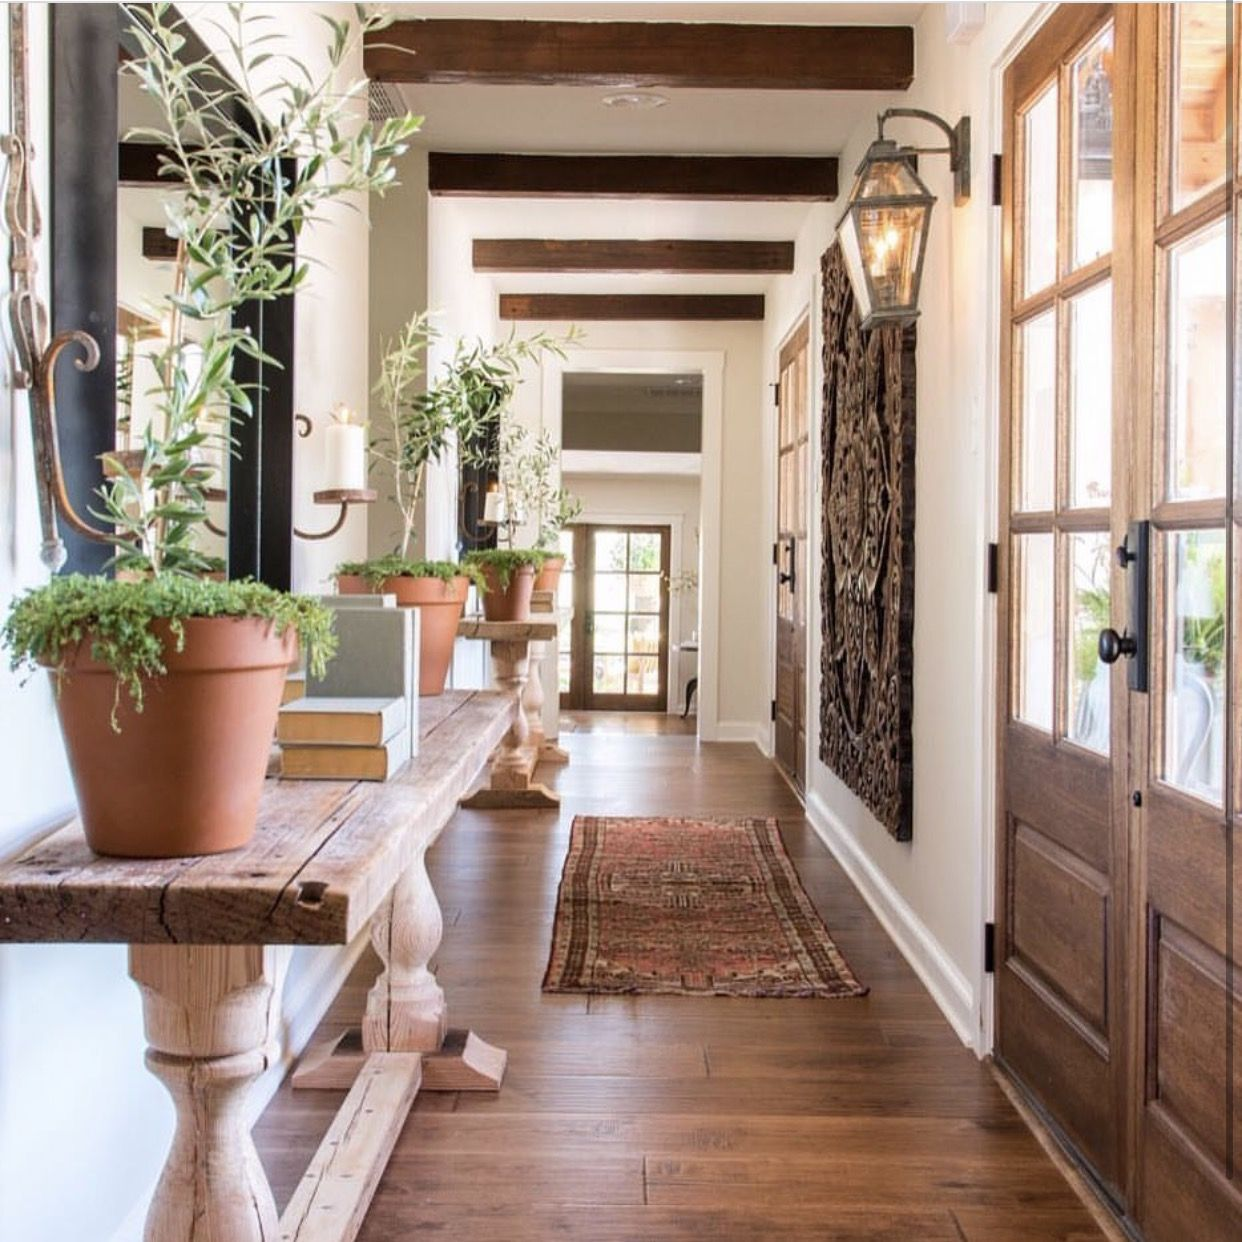 Designs By Joanna Gaines Of Hgtv Fixer Upper Owner Of: Gorgeous Entryway By Joanna Gaines From HGTV's Fixer Upper